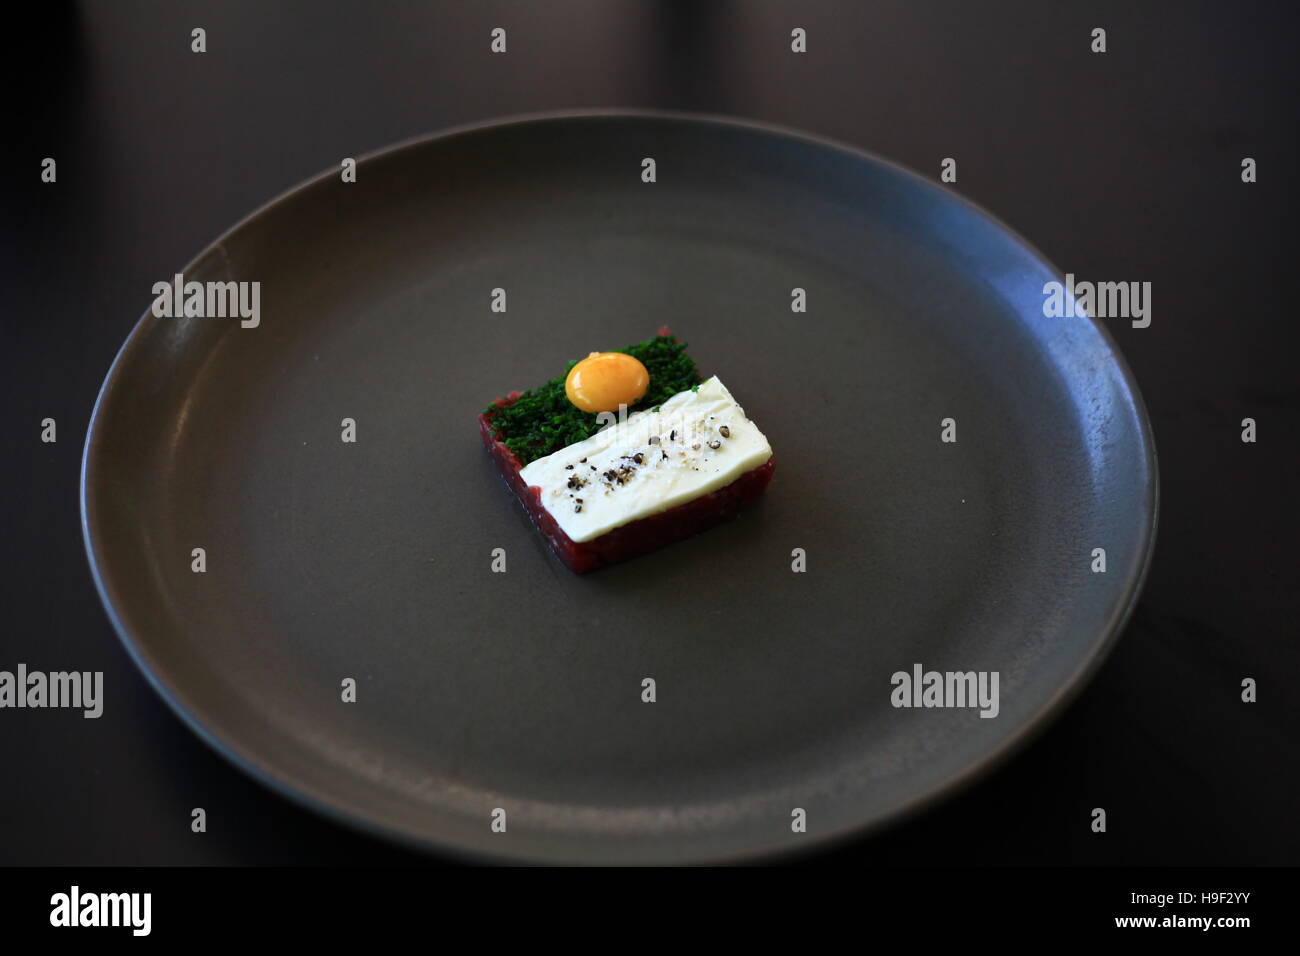 Venison tartare with quail egg yolk, butter and chive - Stock Image